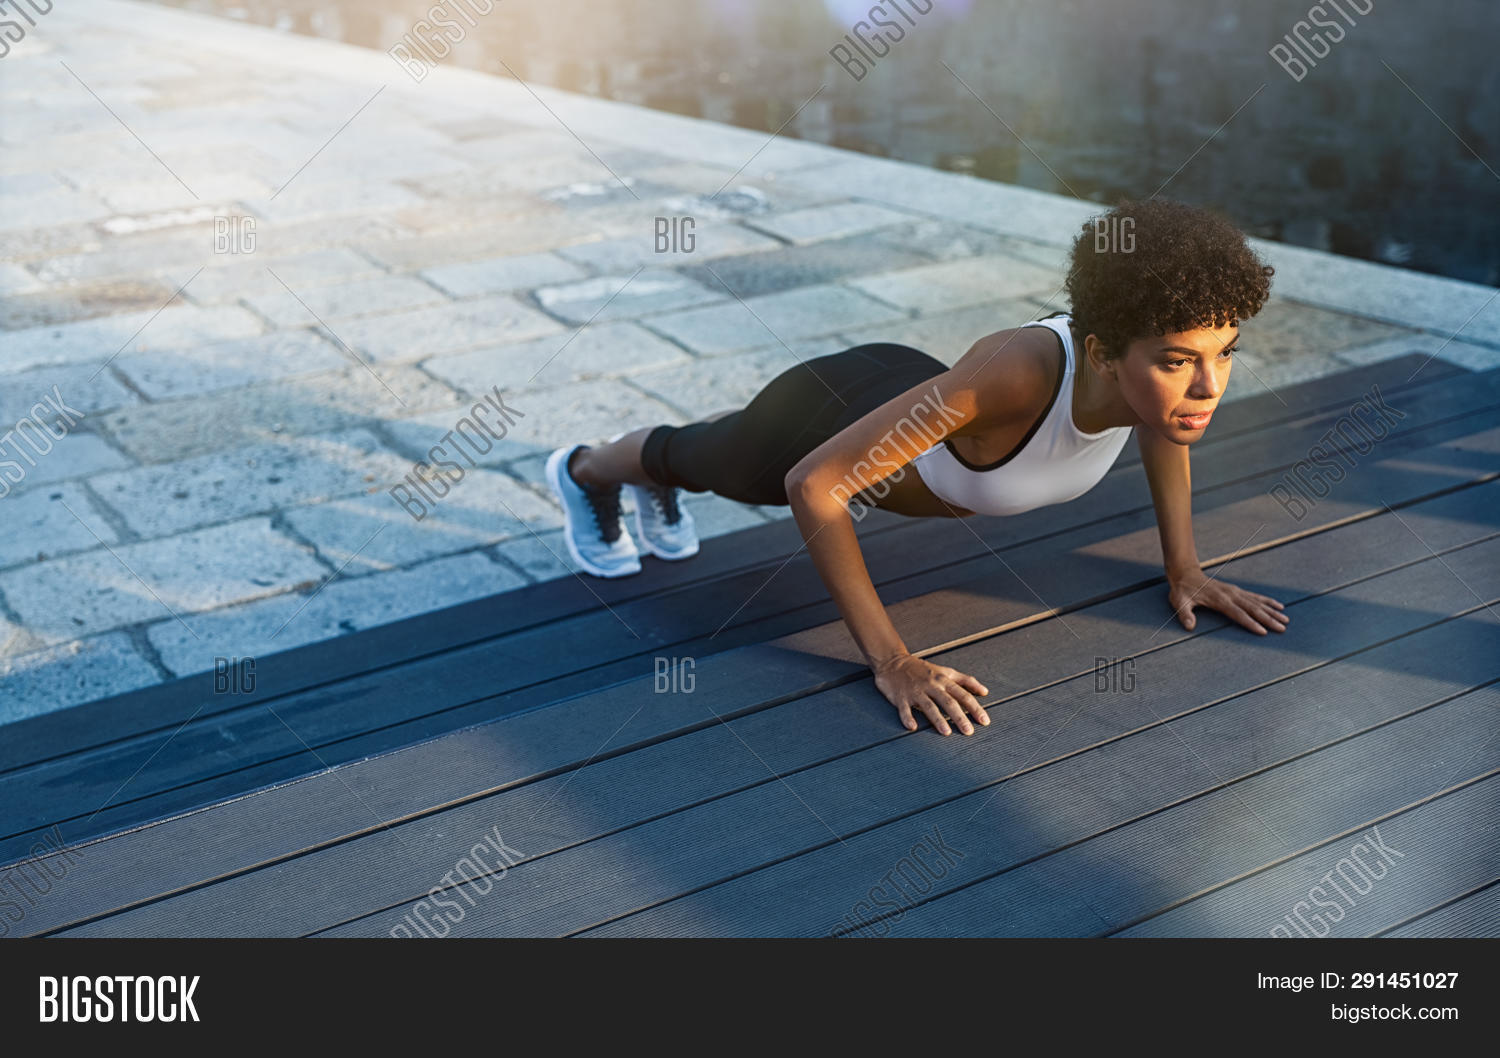 Fit african girl doing pushup exercise outdoor in the city street at dusk. Brazilian fitness woman w